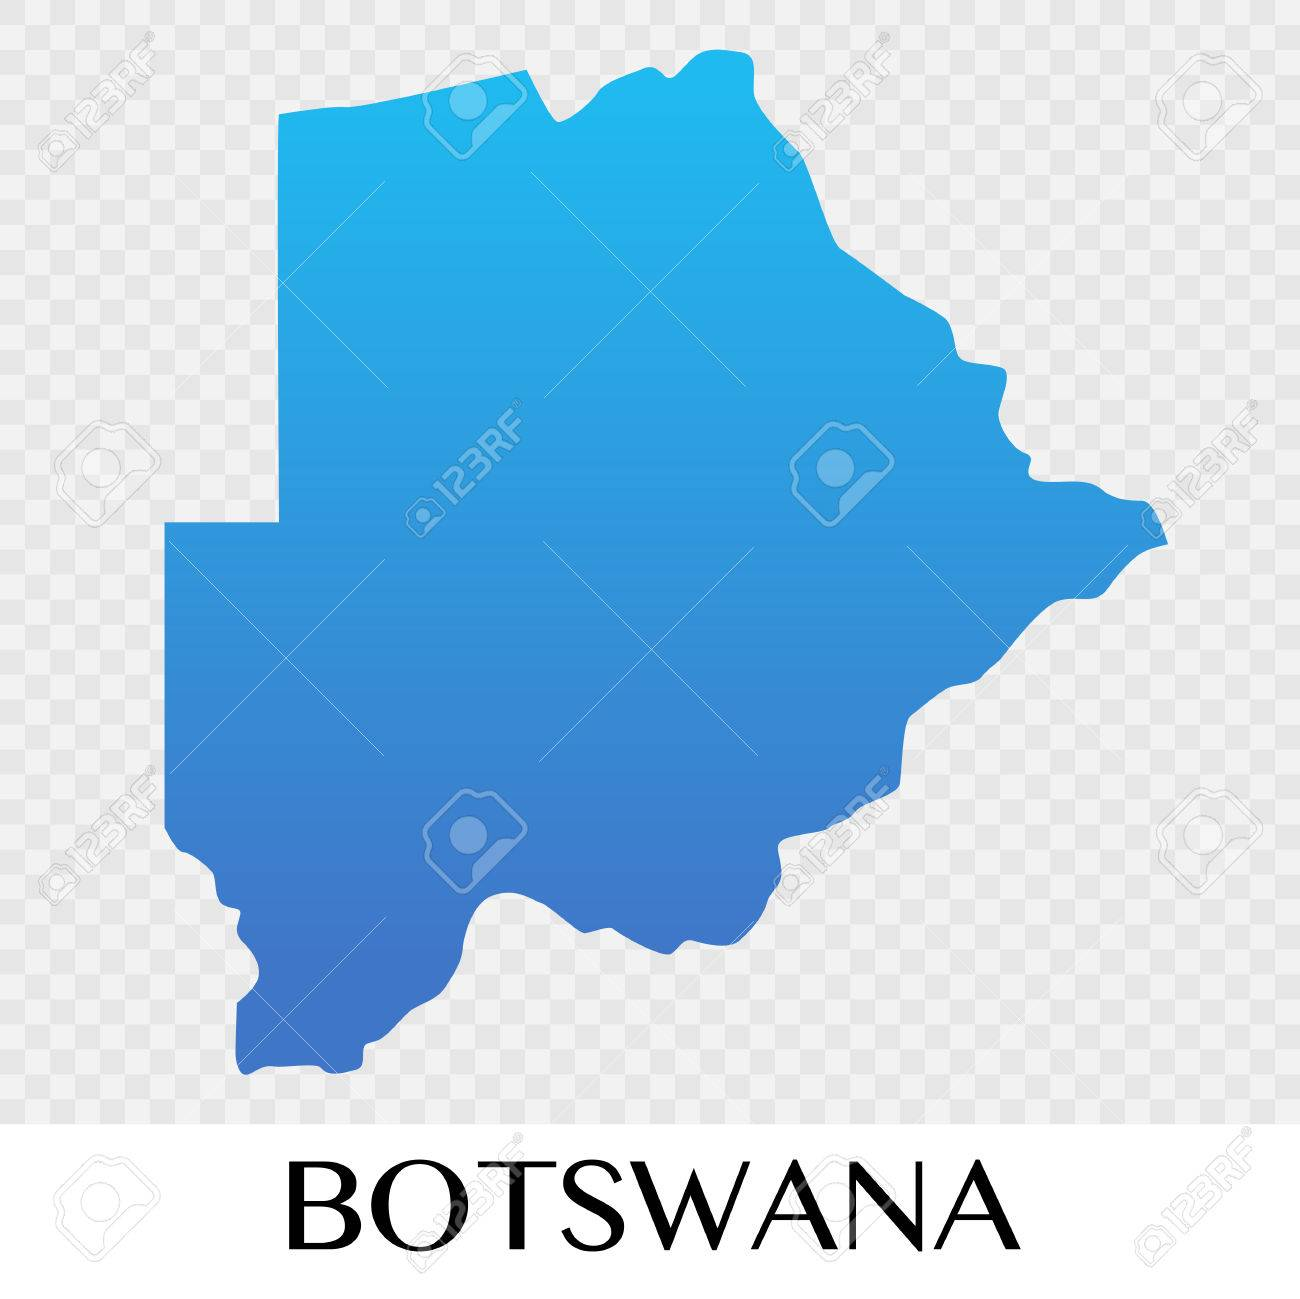 Botswana Map In Africa Continent Illustration Design Stock Vector